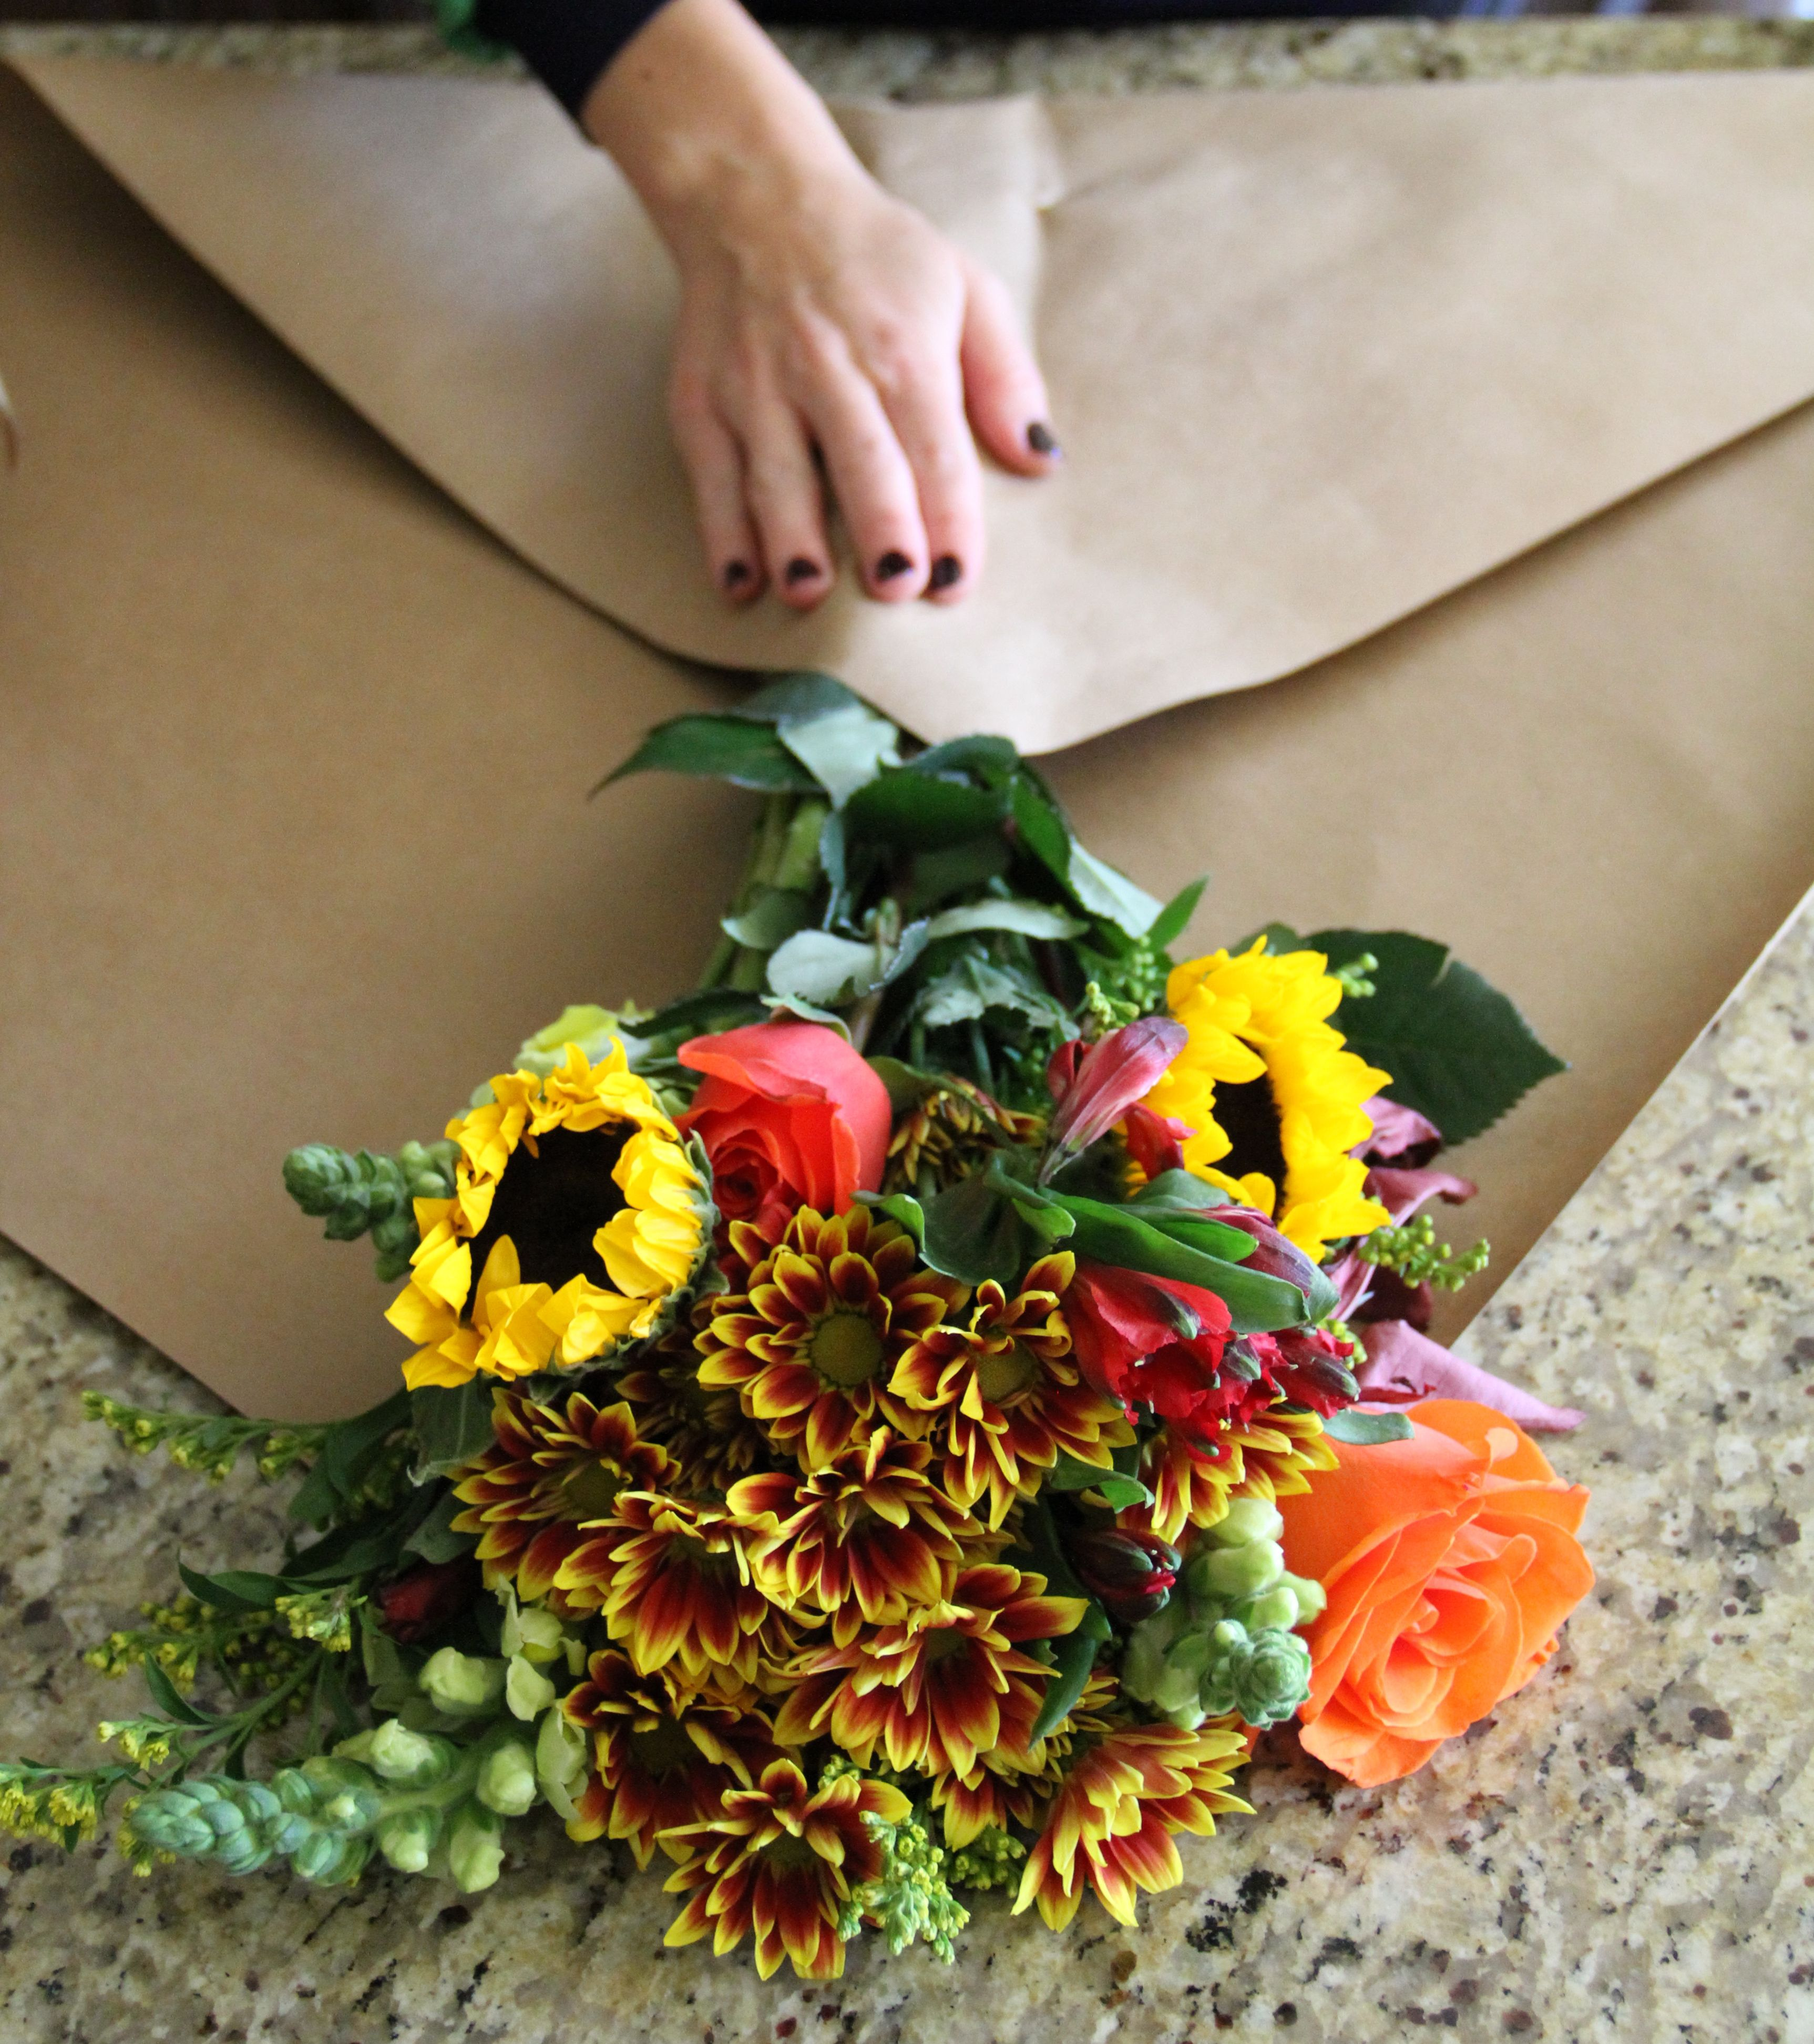 How to wrap flowers in paper Wrap flowers in paper